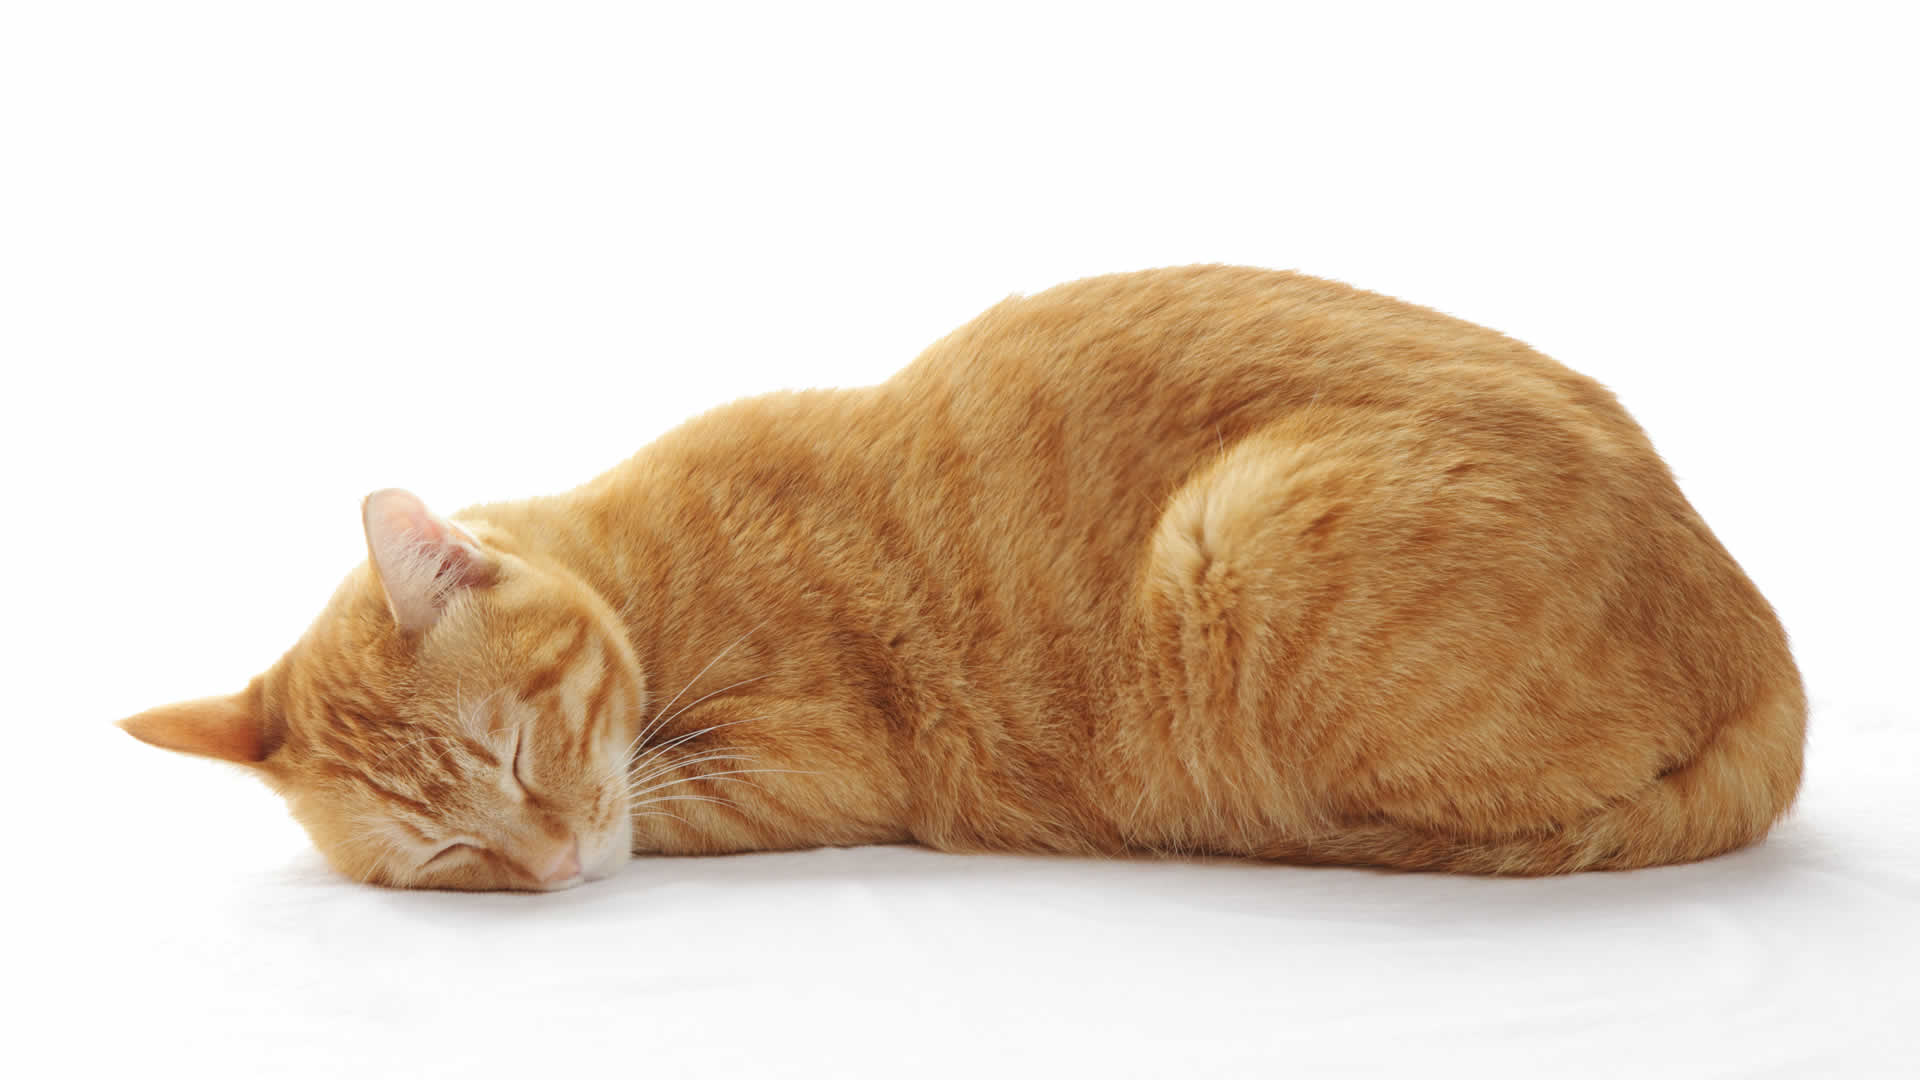 Cat sleeping in a meatloaf position